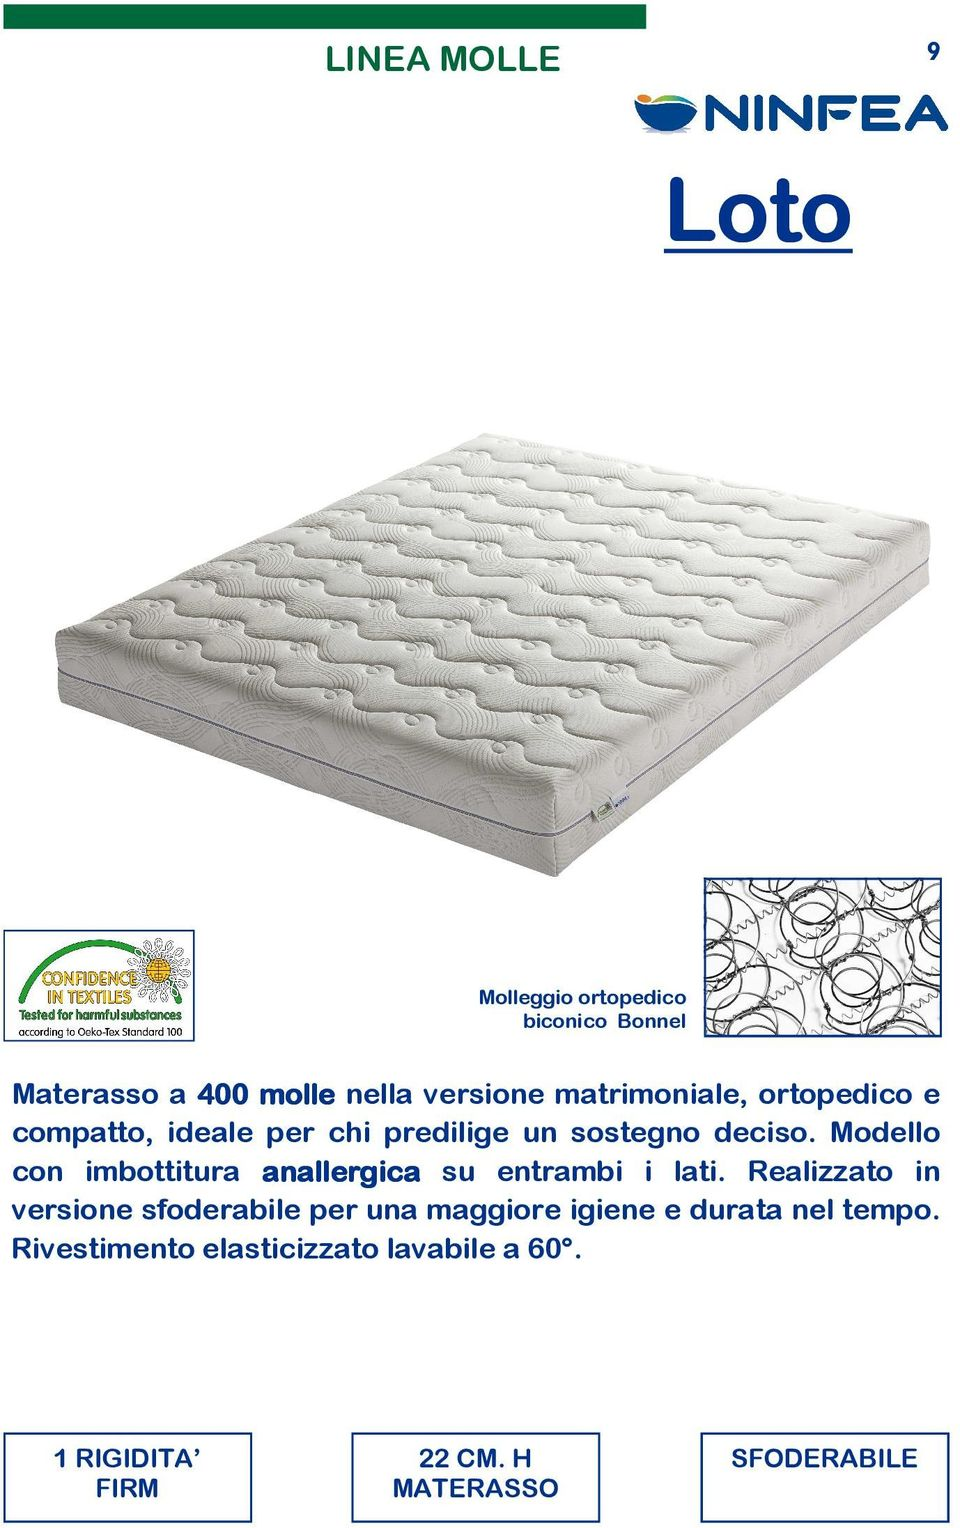 Relax Materassi Caltagirone.Linea Molle Made In Italy Pdf